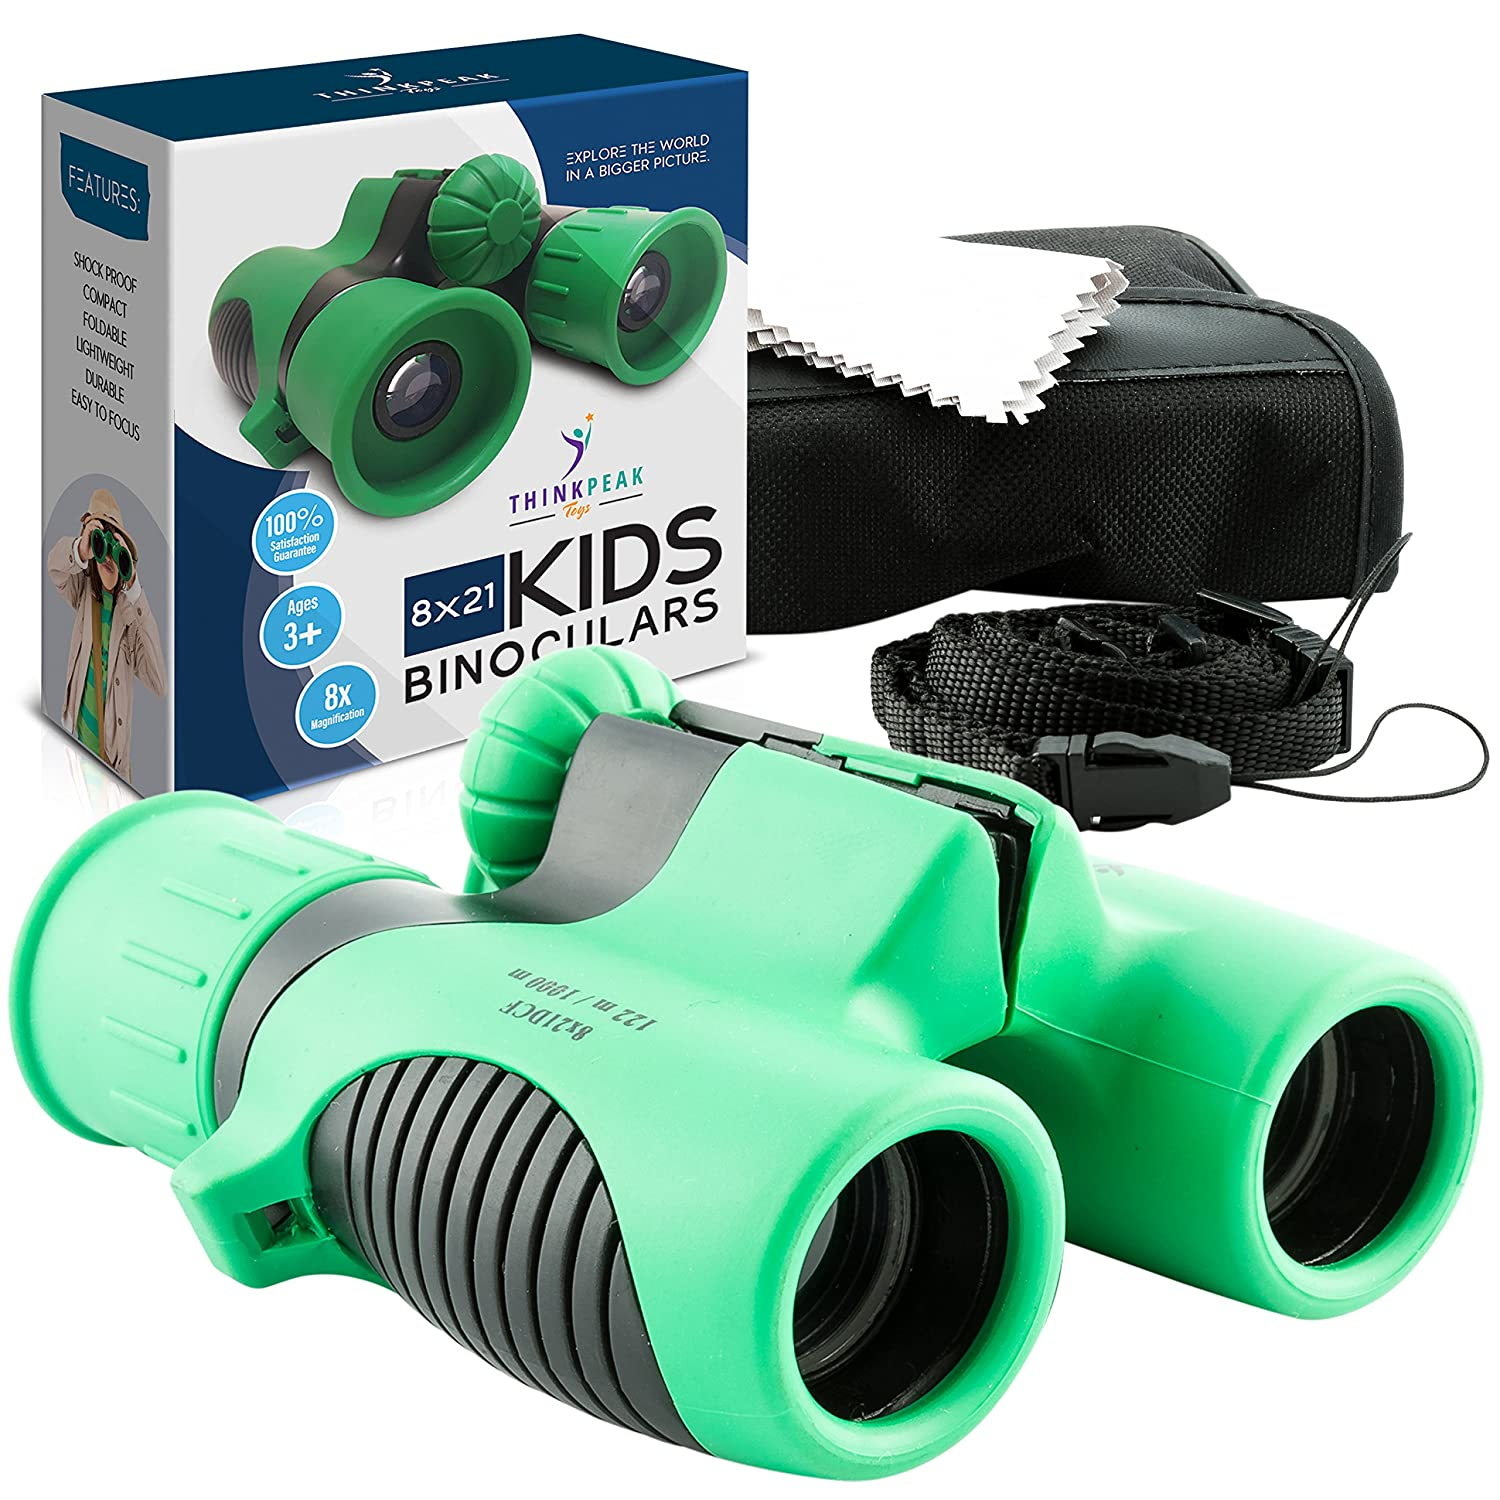 Binoculars for Kids High Resolution 8x21 - Compact High Power Kids Binoculars for Bird Watching, Hiking, Hunting, Outdoor Games, Spy & Camping Gear